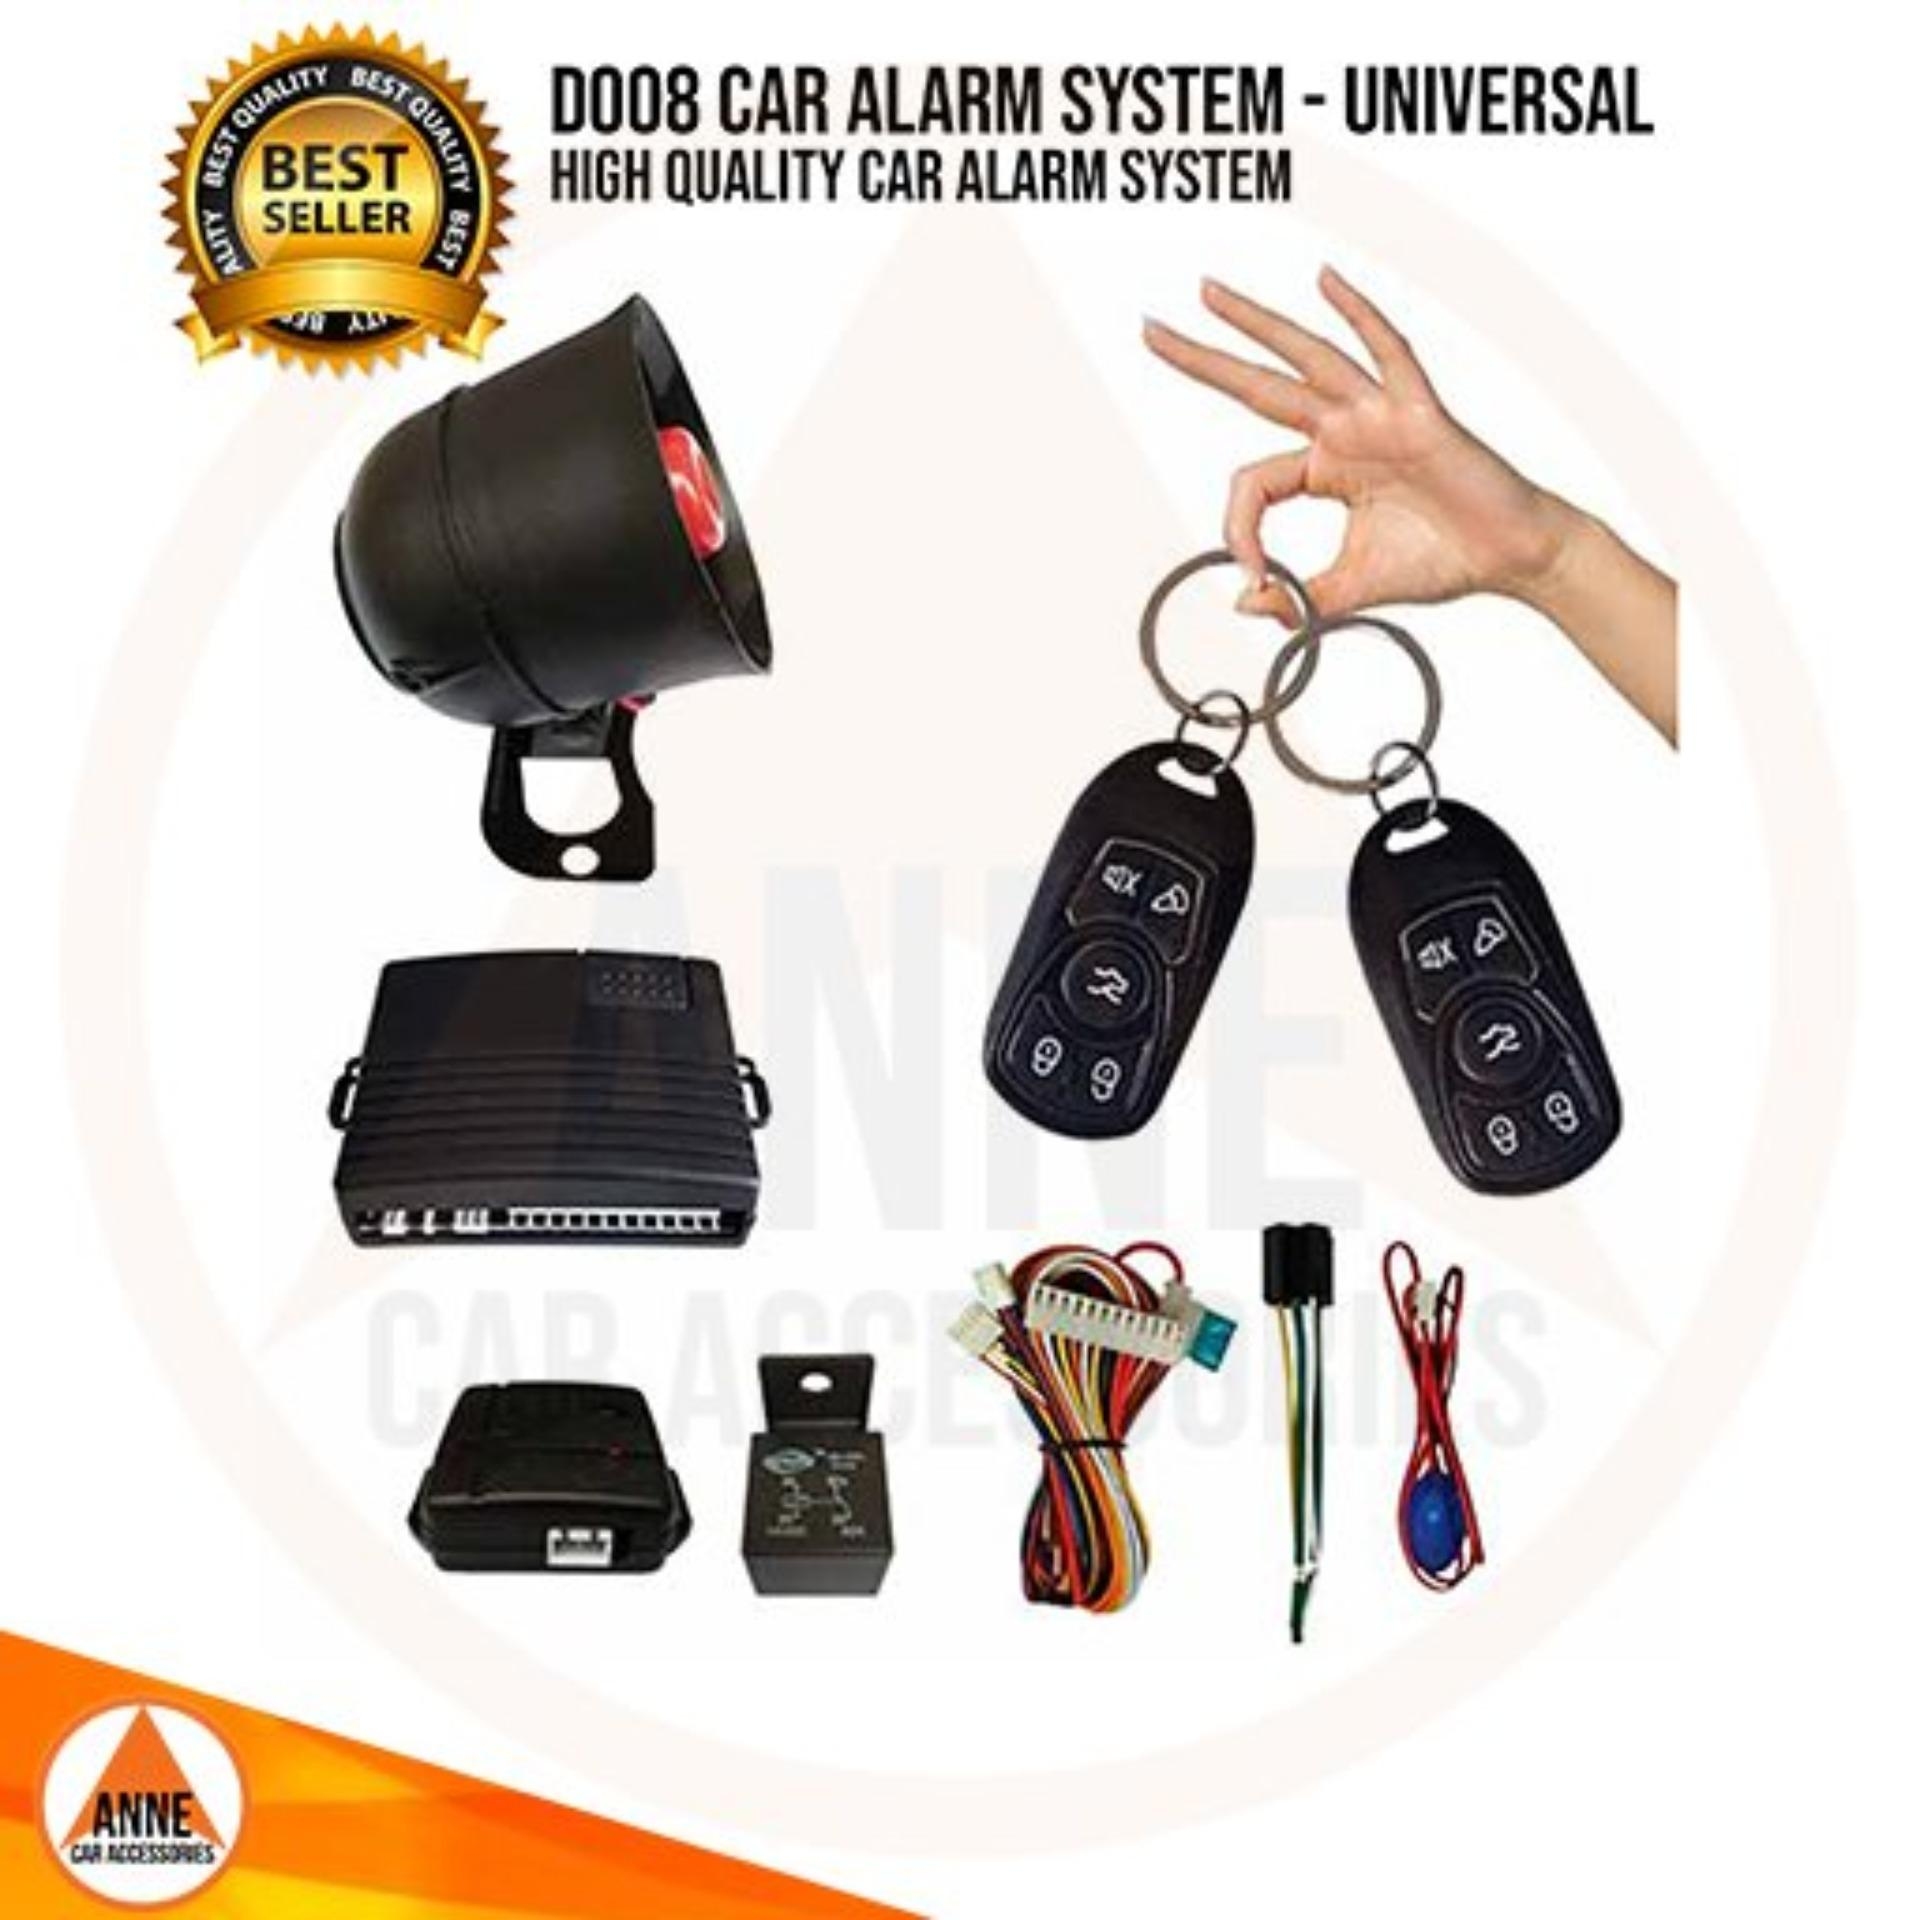 Universal Car Alarm System with 100% Water Proof Remote - High Quality